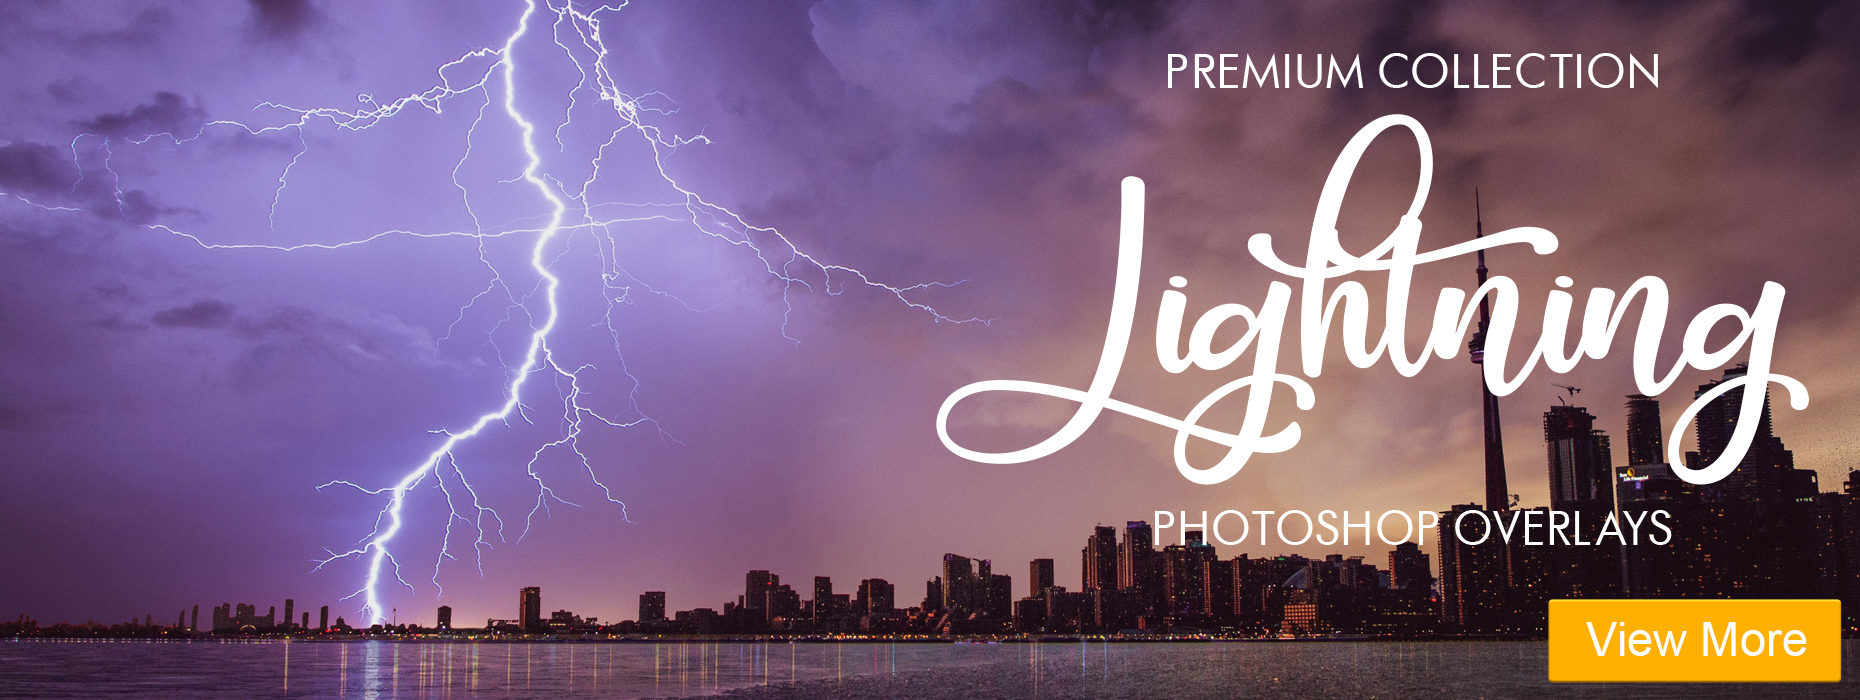 free rain overlay photoshop lightning photoshop overlays banner night city